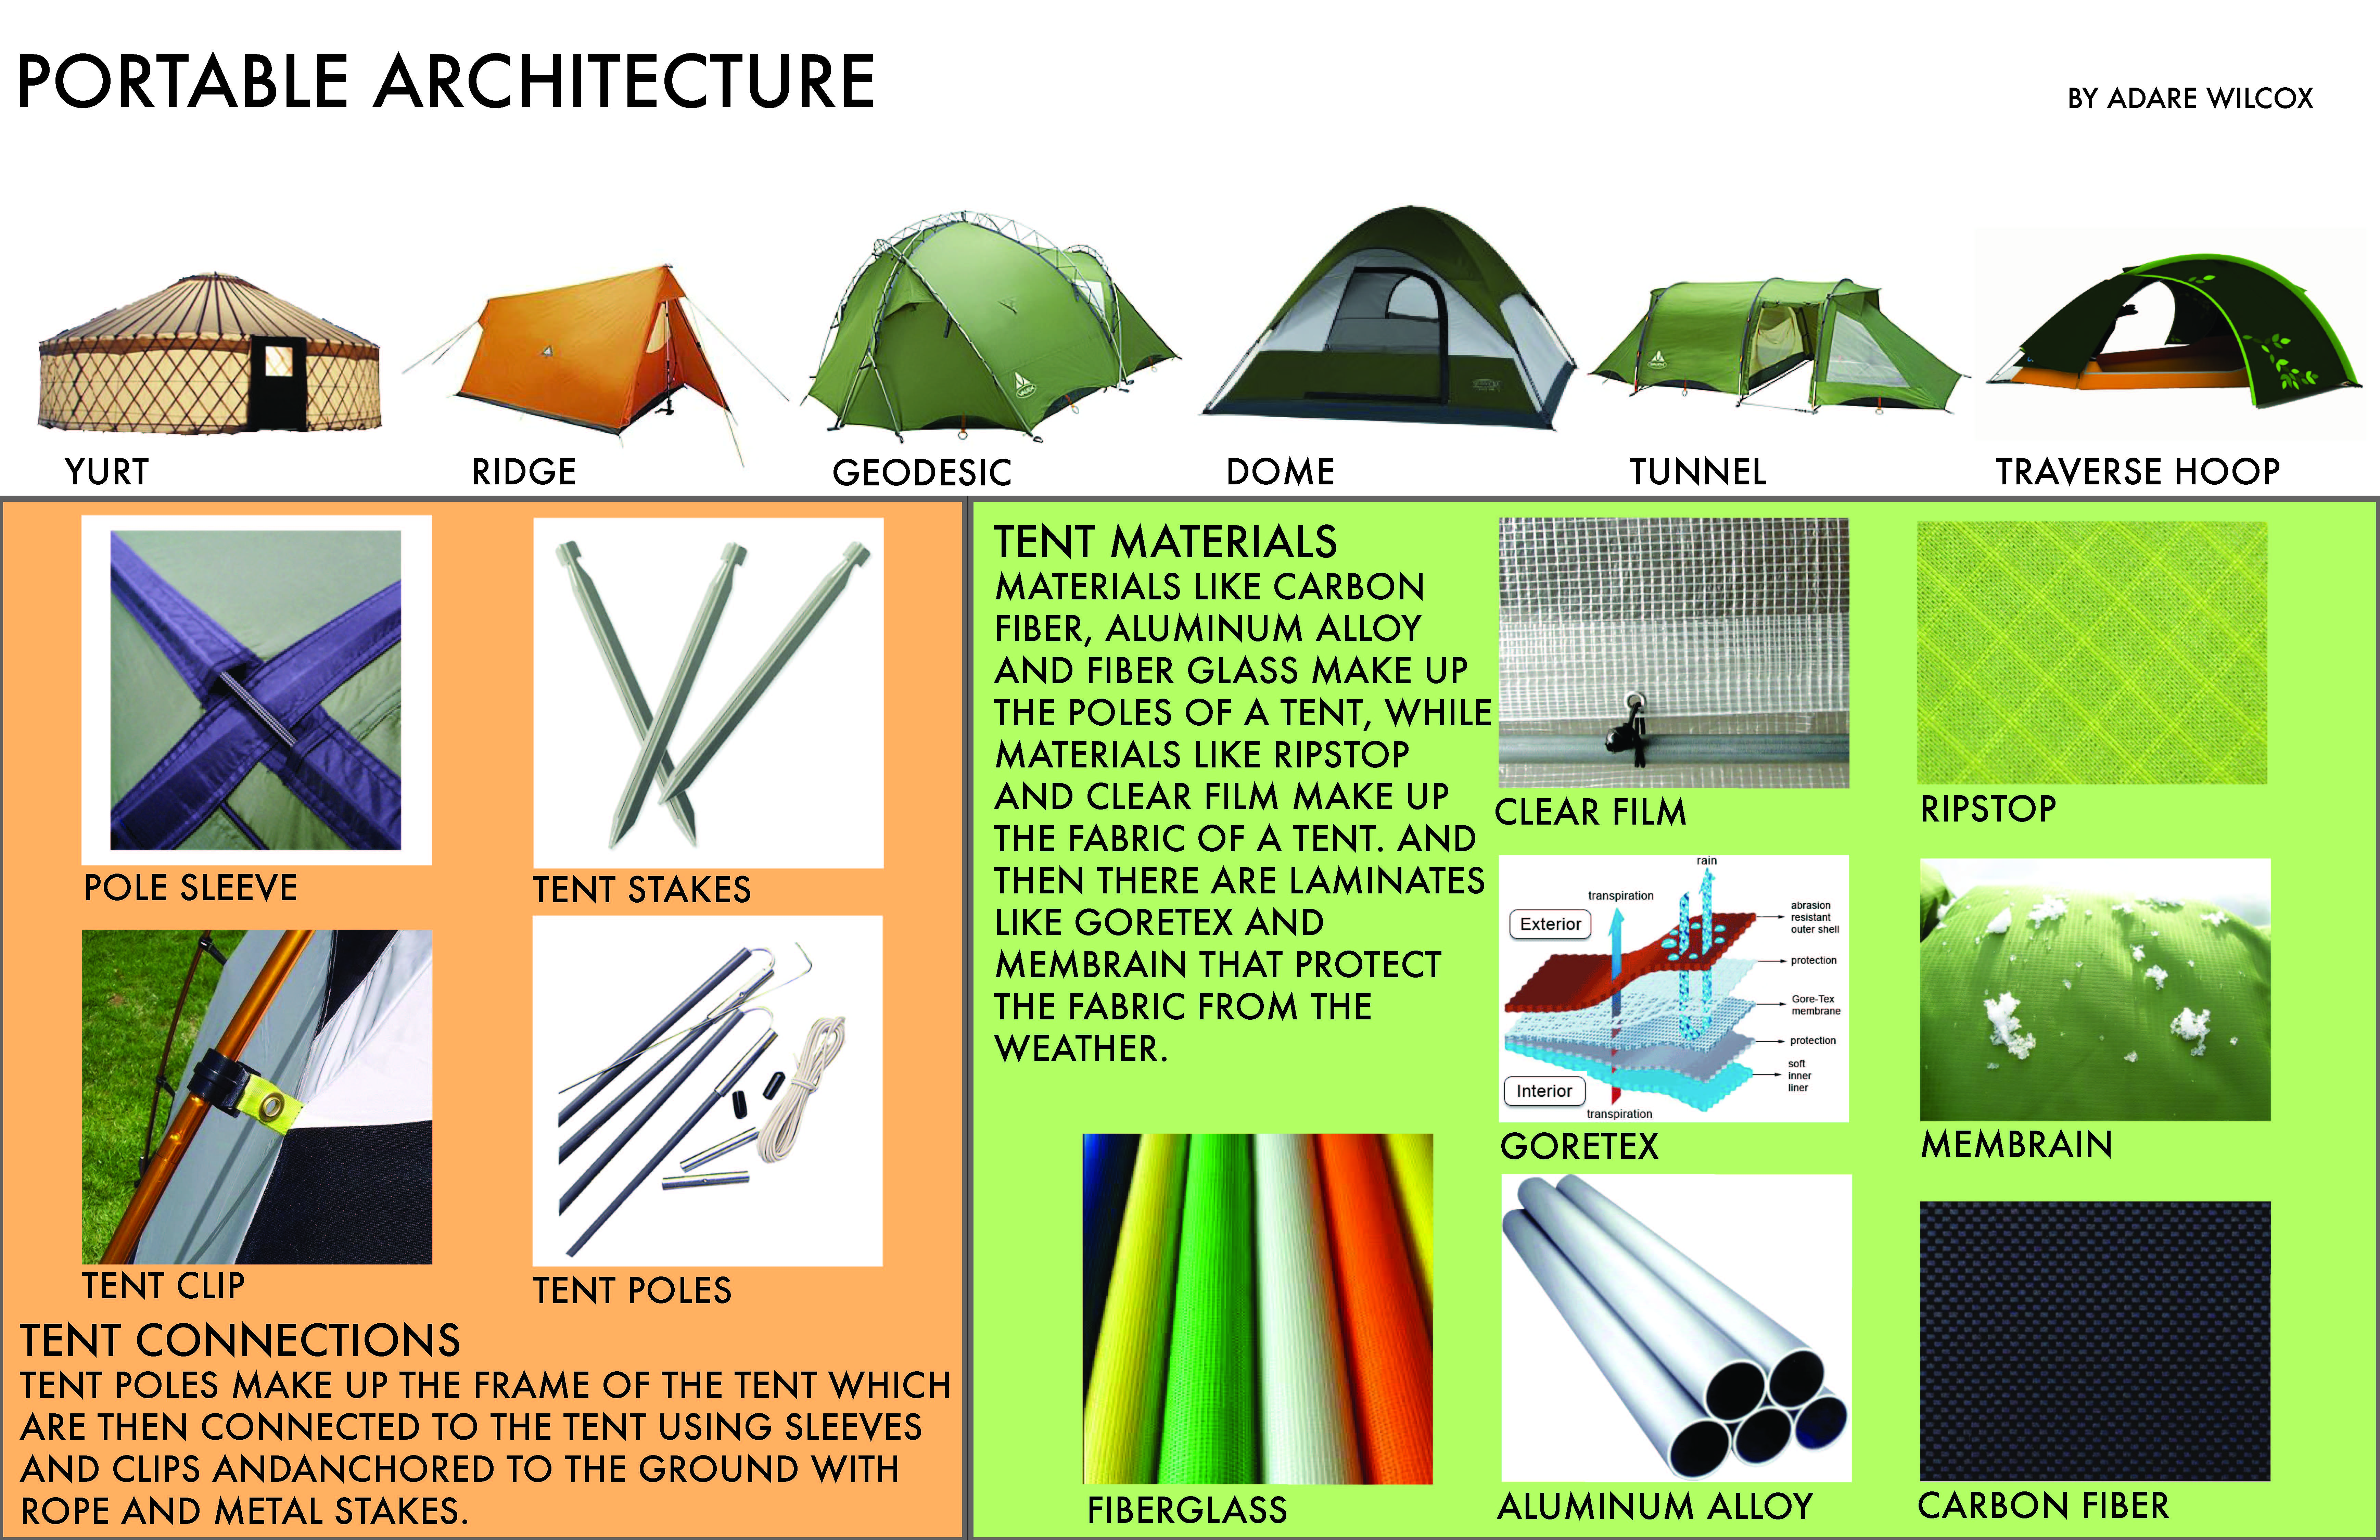 Portable Architecture Tent Research. Types of Tents  sc 1 st  FABRIC.A.TION Studio - WordPress.com & Portable Architecture | FABRIC.A.TION Studio